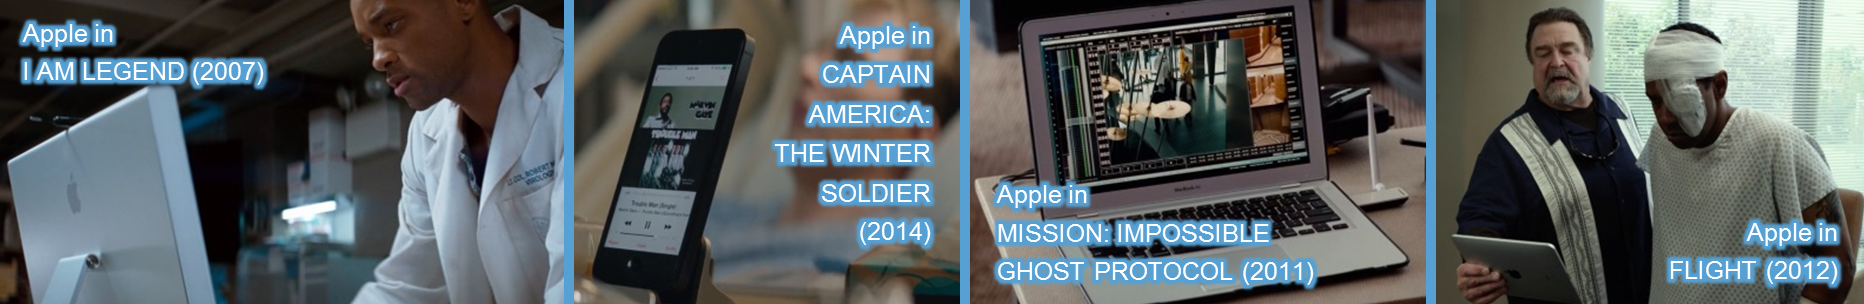 apple in movies